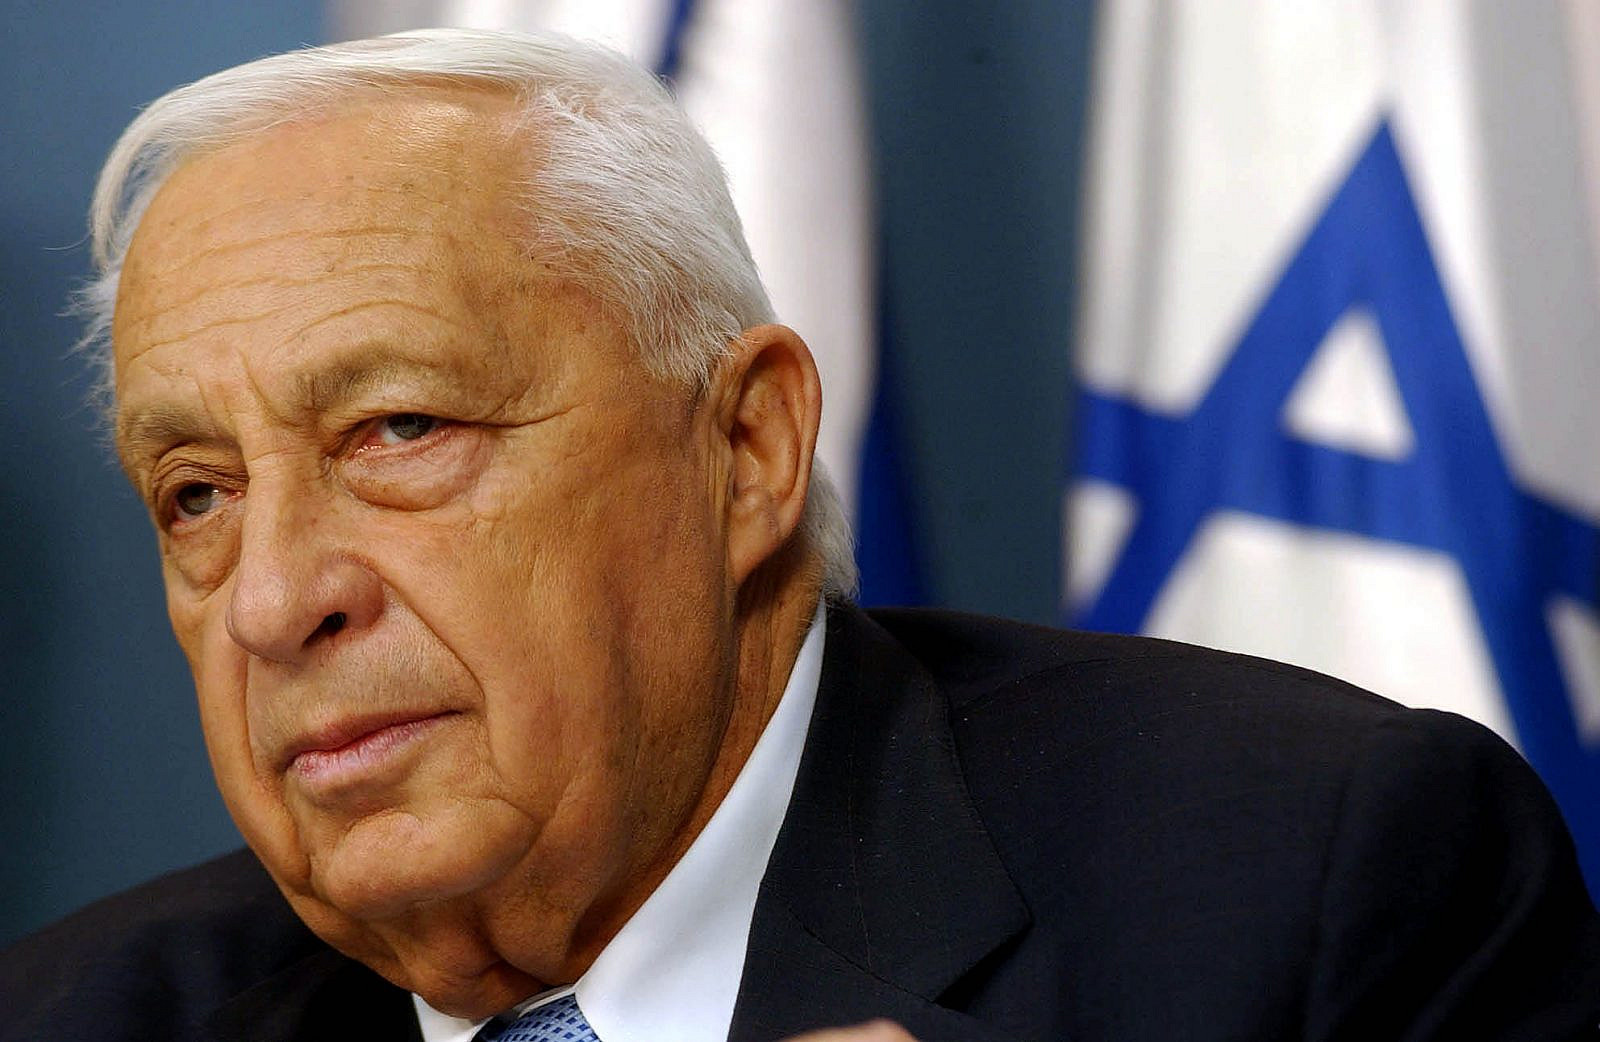 Portrait of former Israeli Prime Minister, Ariel Sharon. (Flash 90)